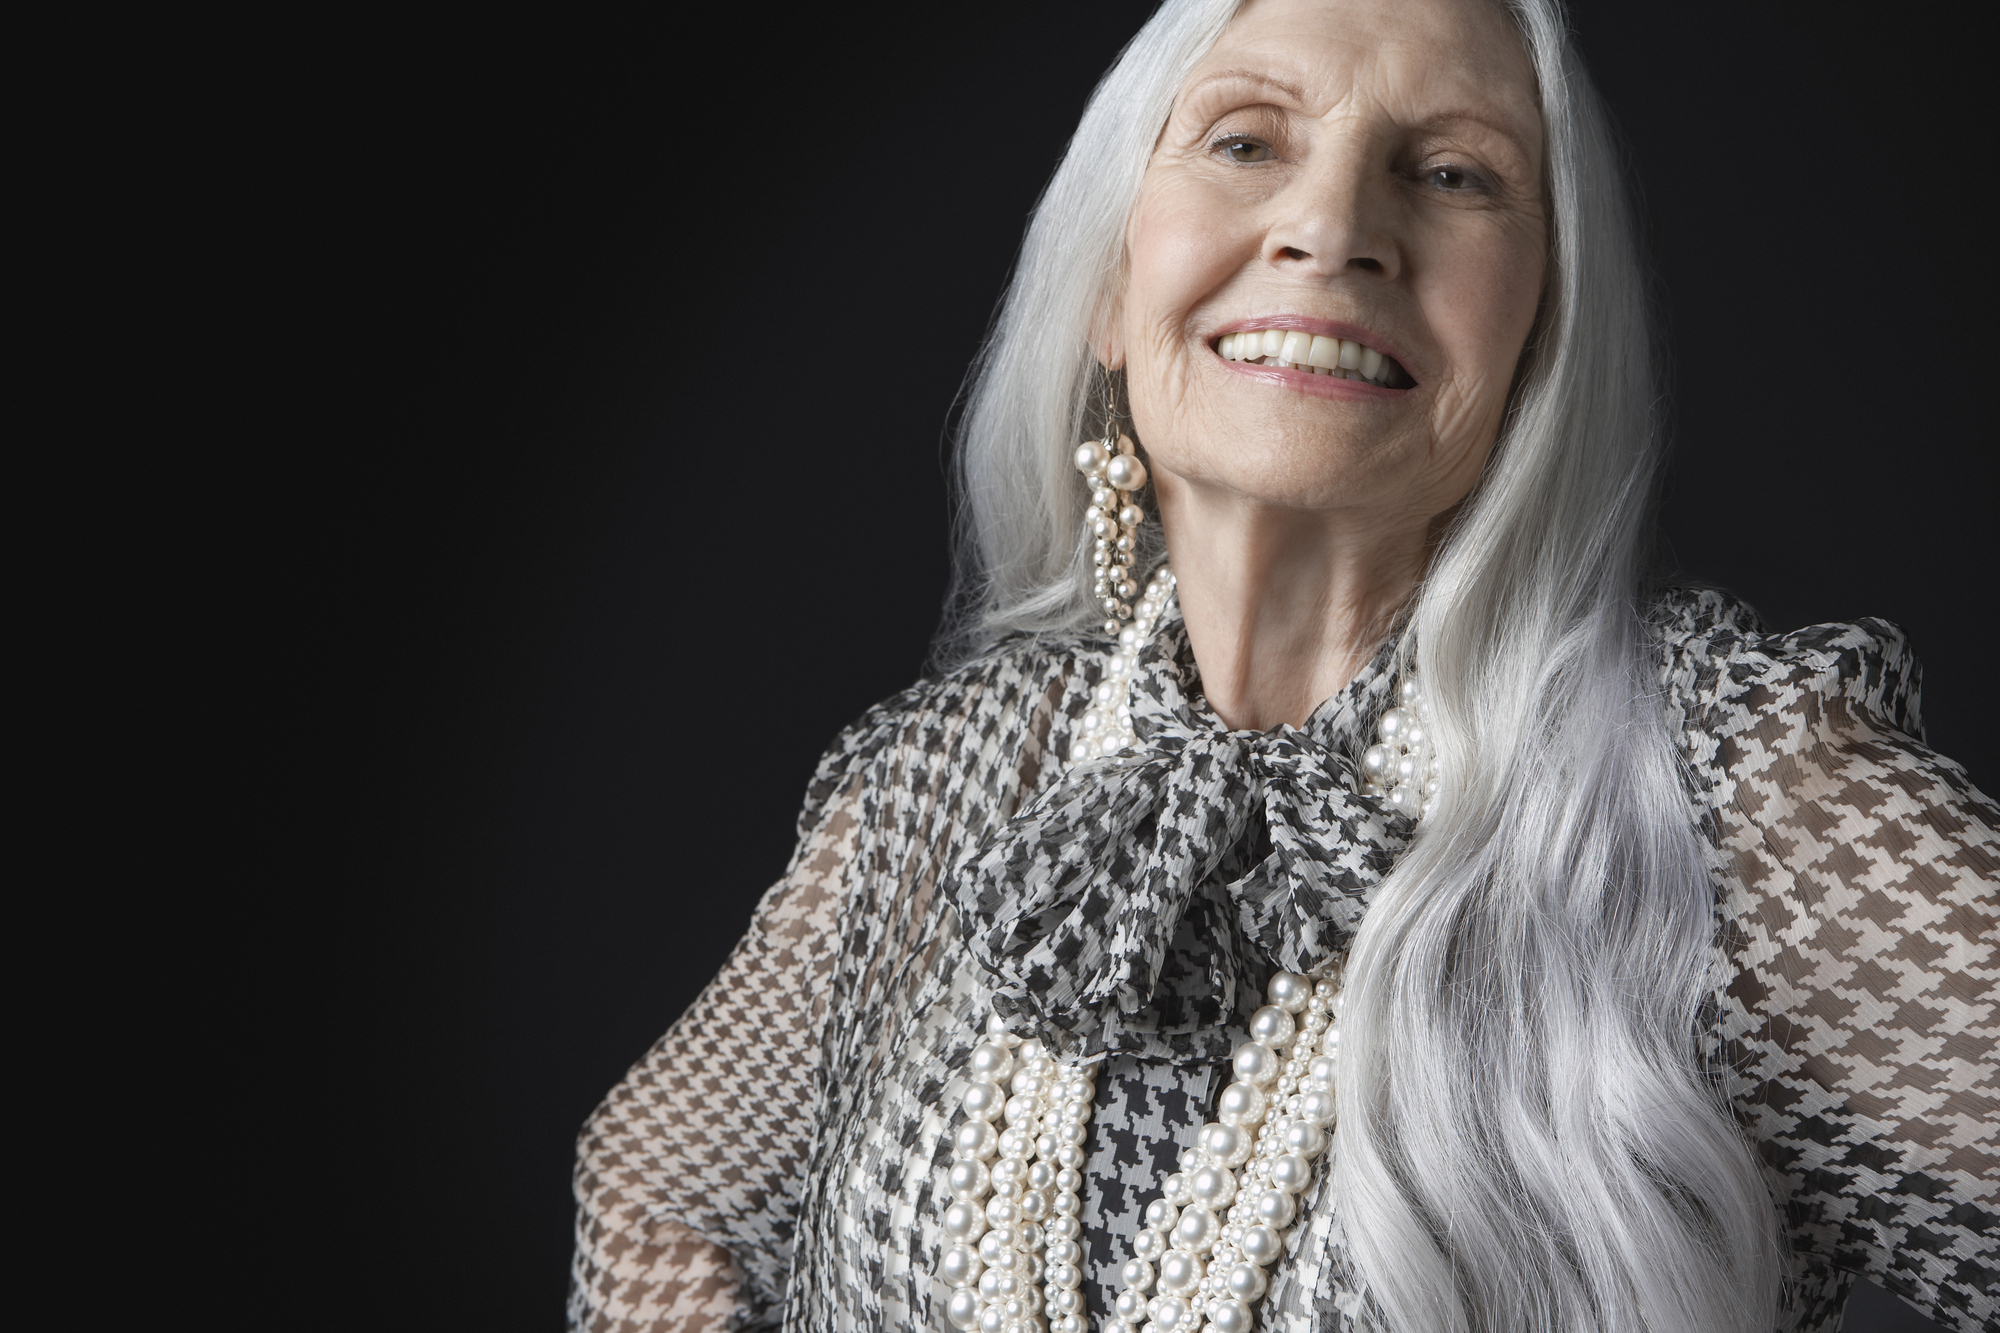 Silver Haired Older Woman